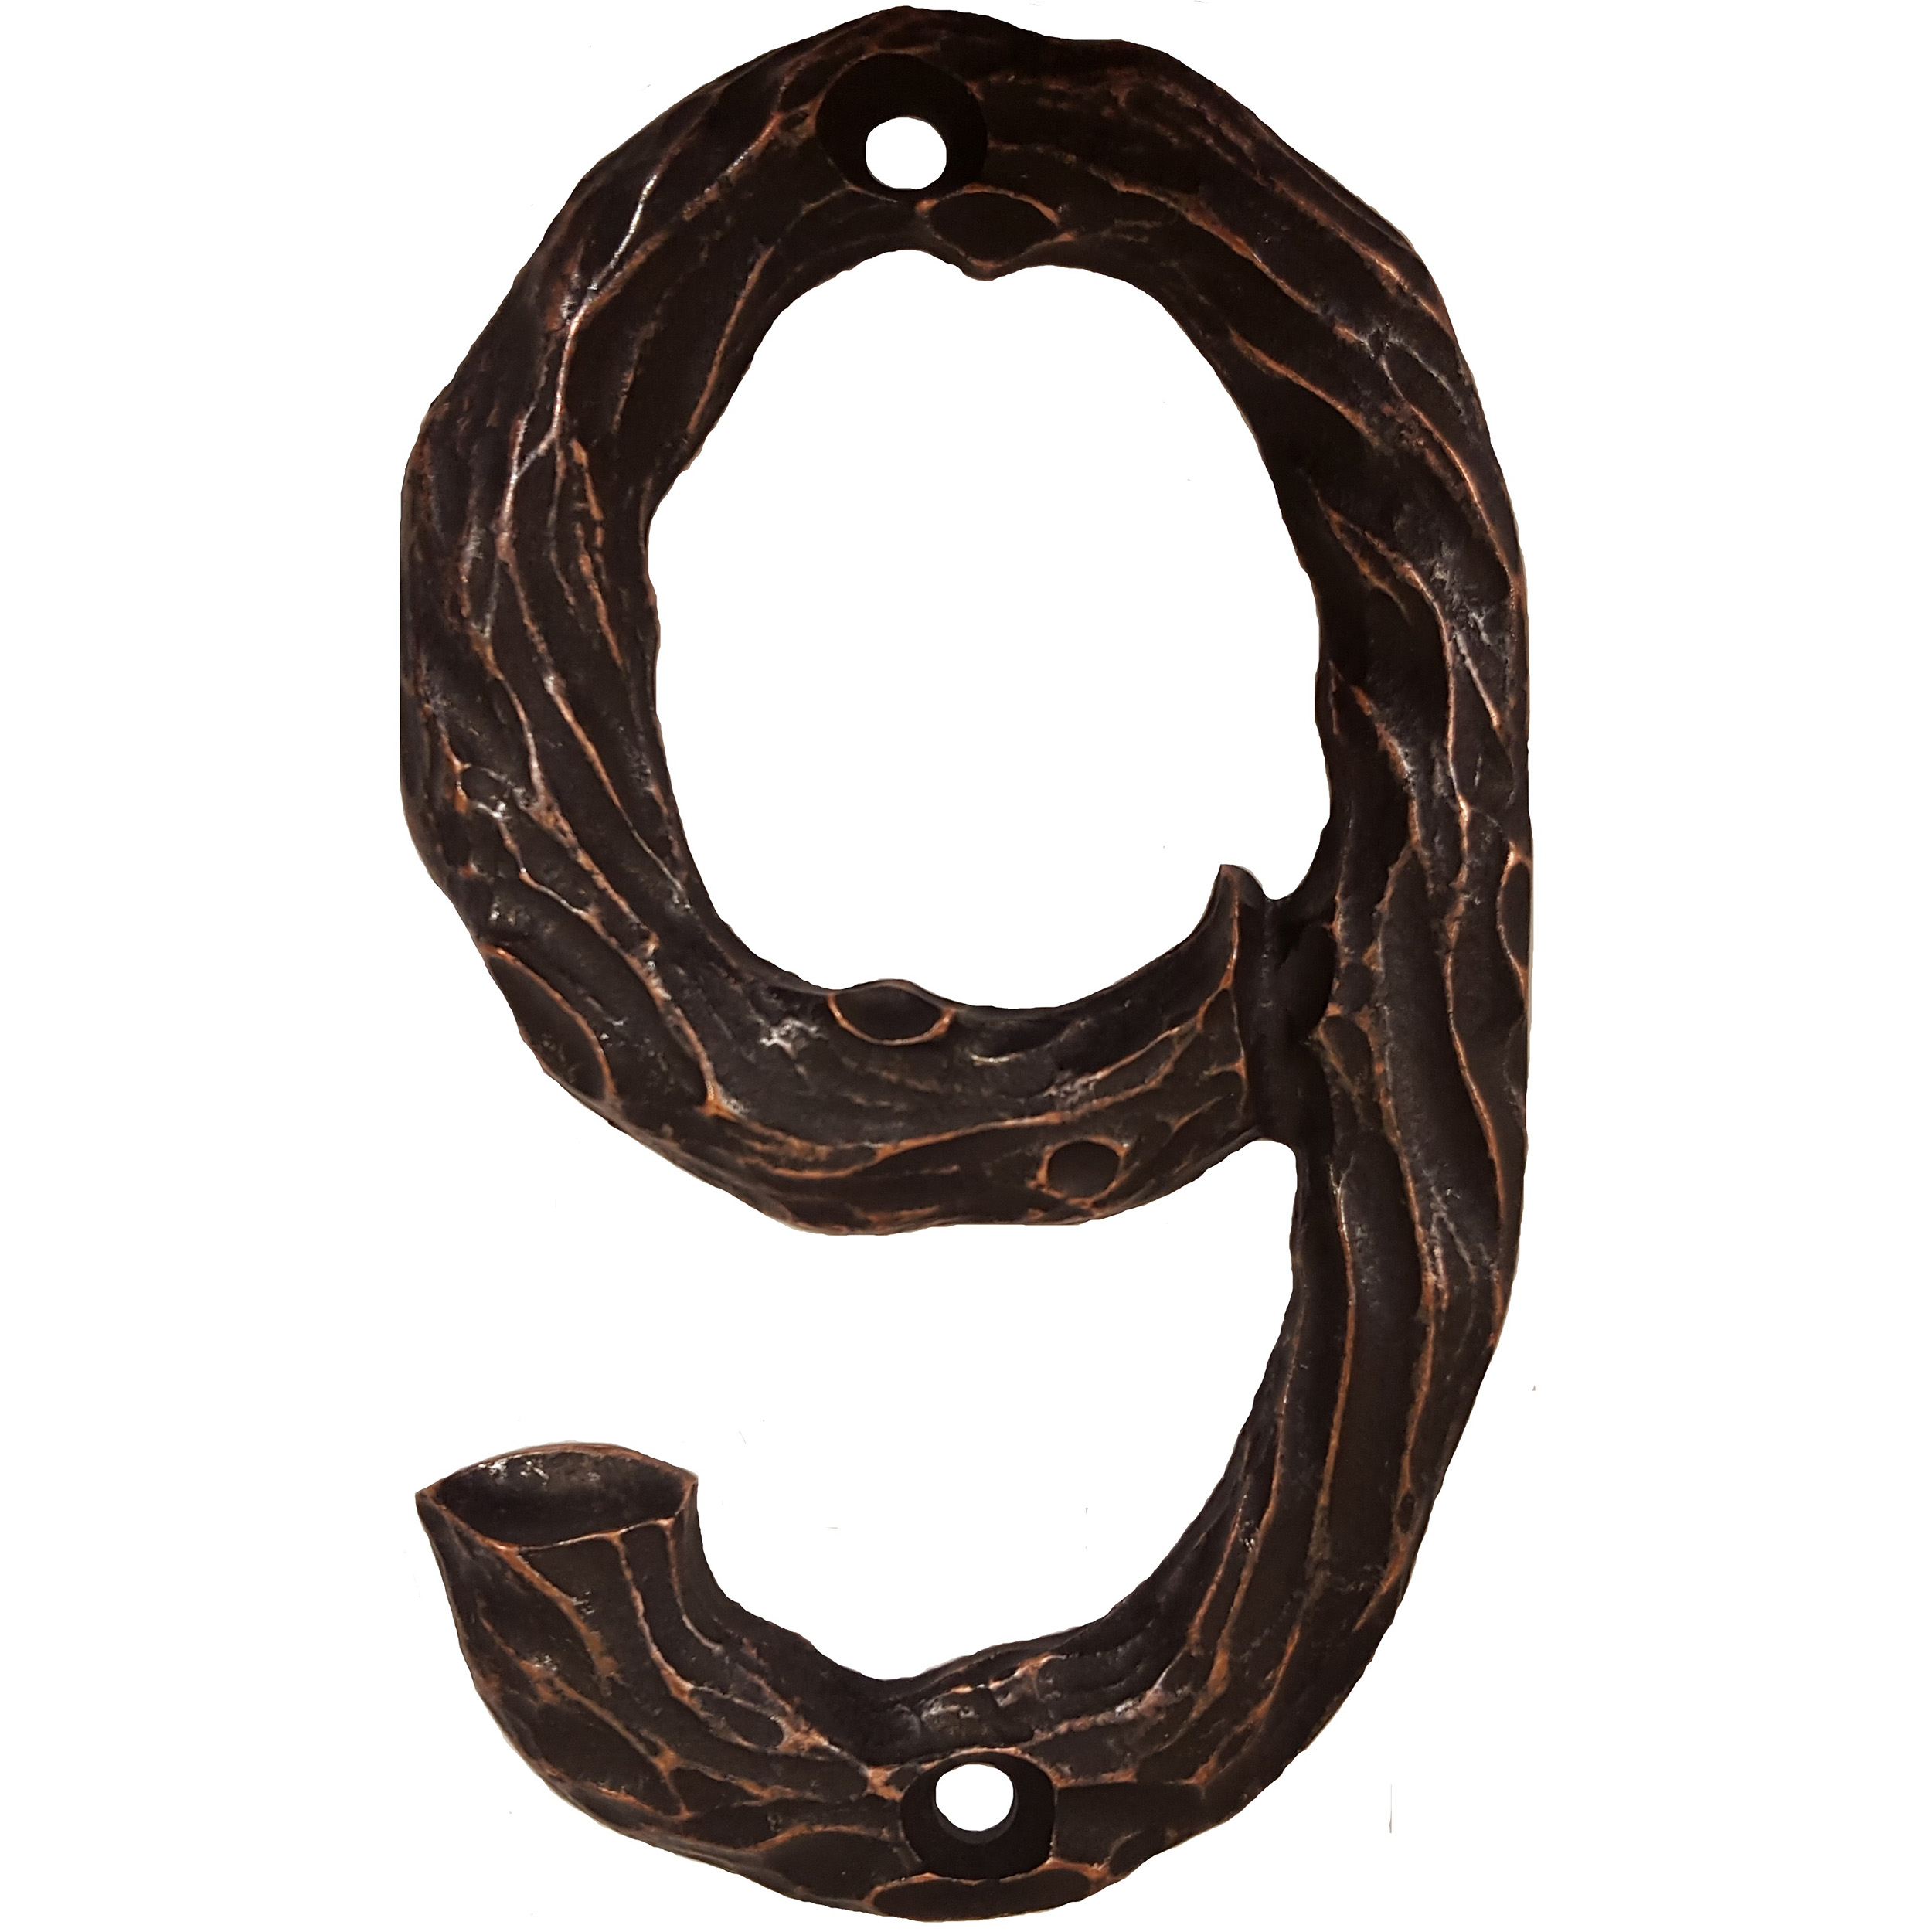 LHN9-ORB Log House Number 9, Oil Rubbed Bronze, 1 piece